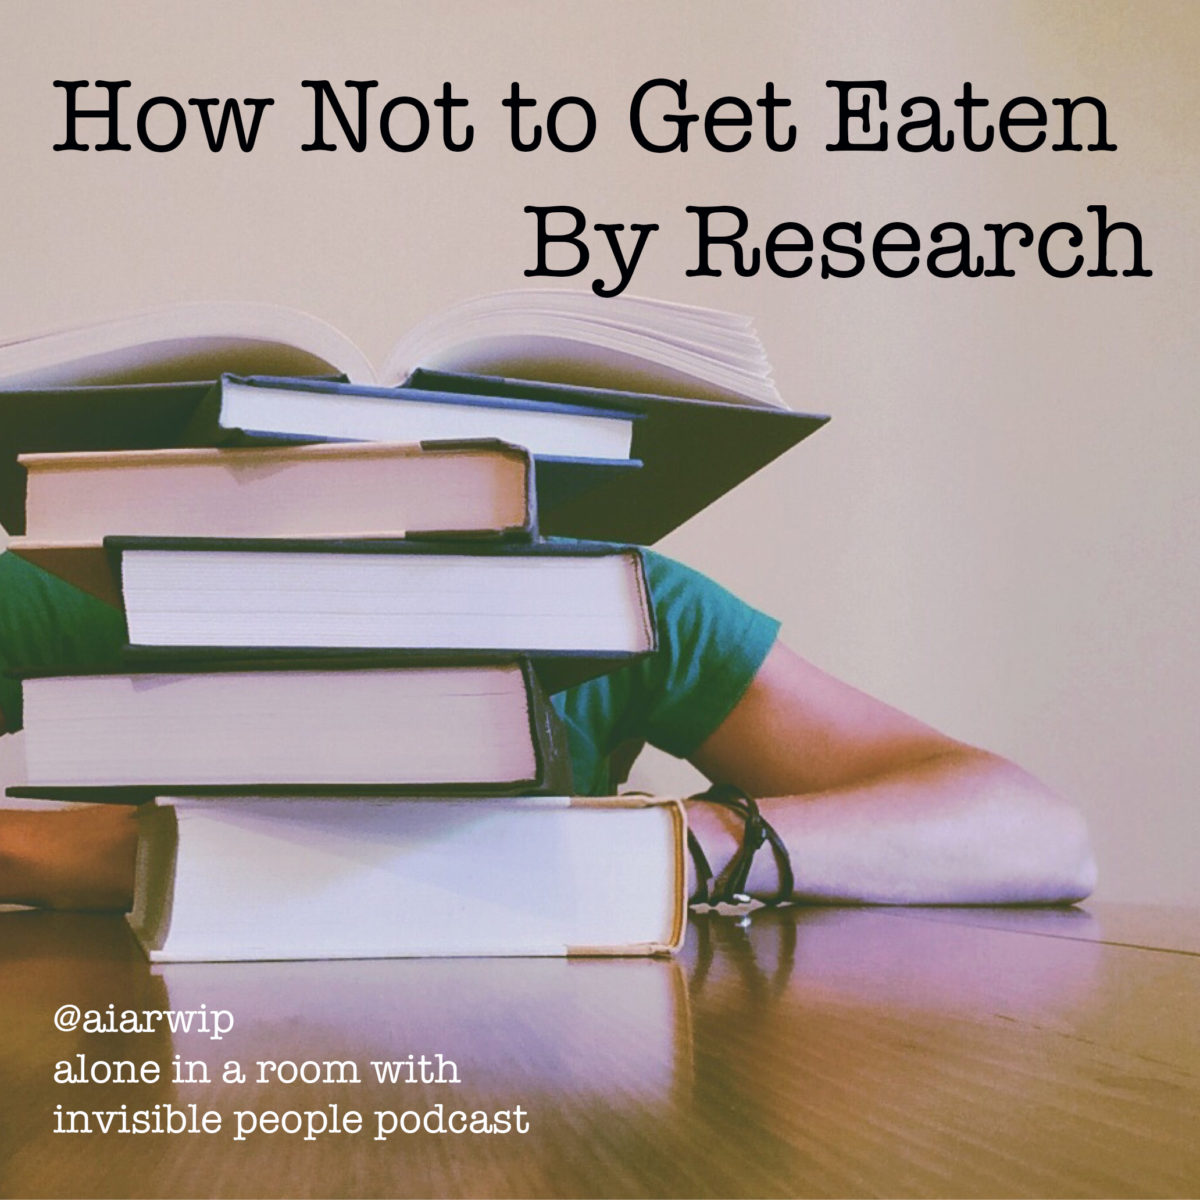 Episode 20: How Not to Get Eaten by Research